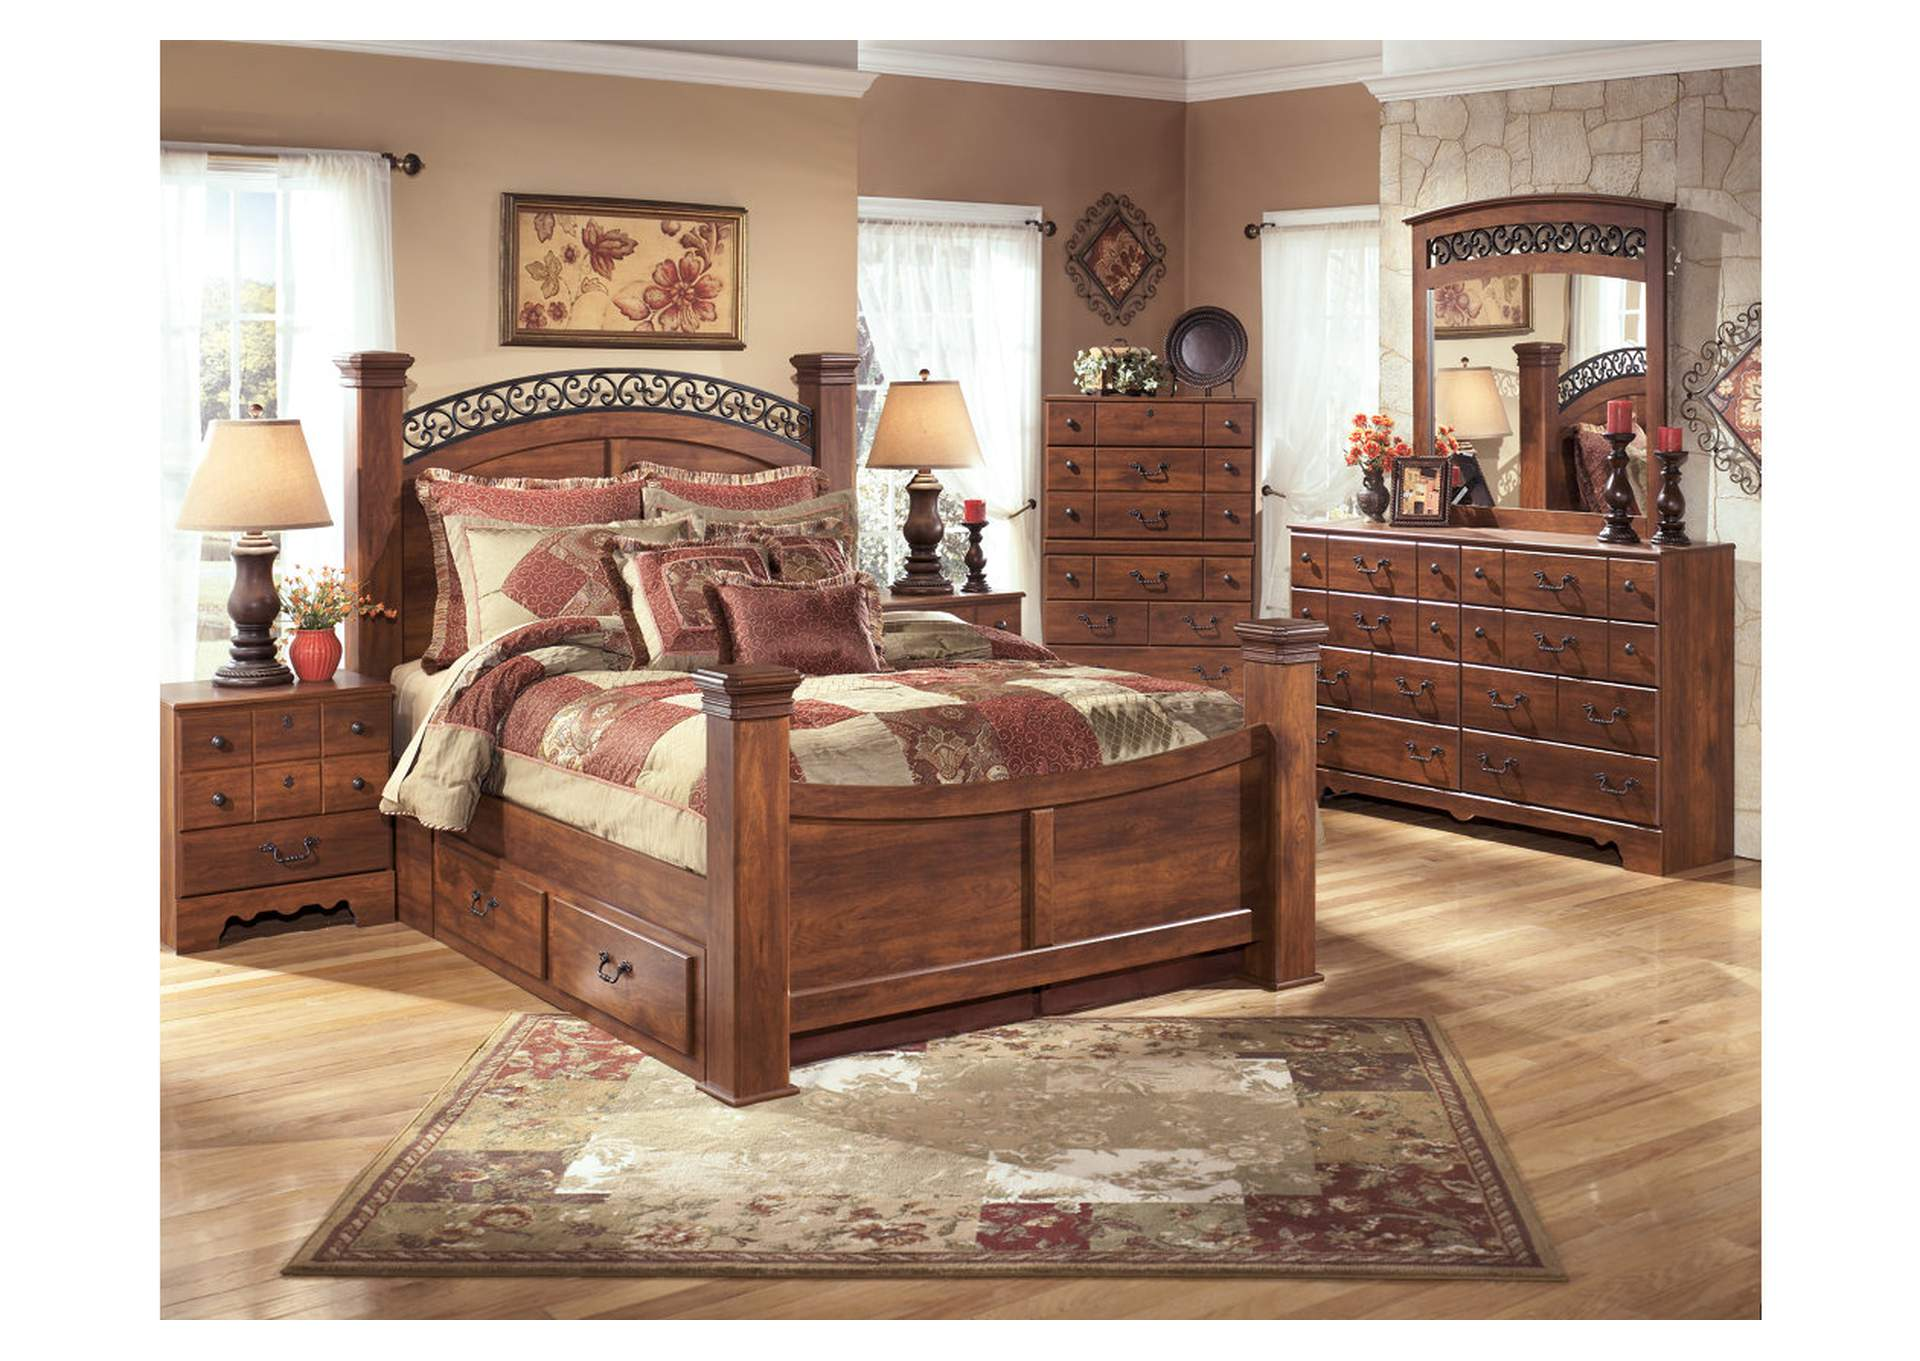 Timberline King Poster Storage Bed w/Dresser & Mirror,Signature Design By Ashley